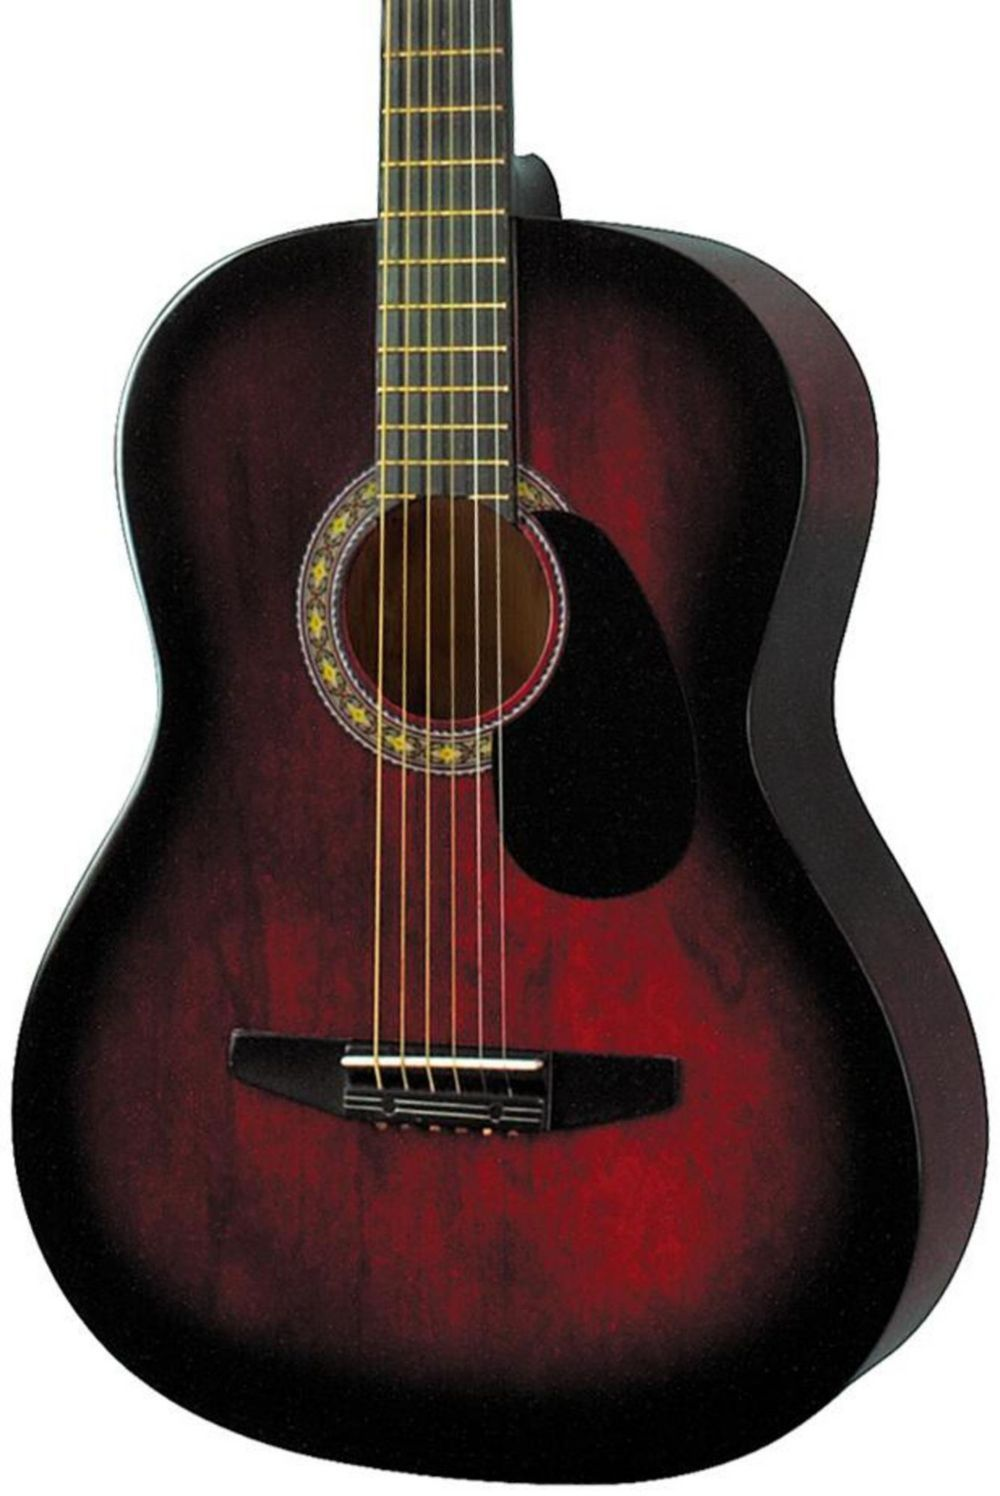 Rogue Starter Acoustic Guitar Red Burst Ovation guitar